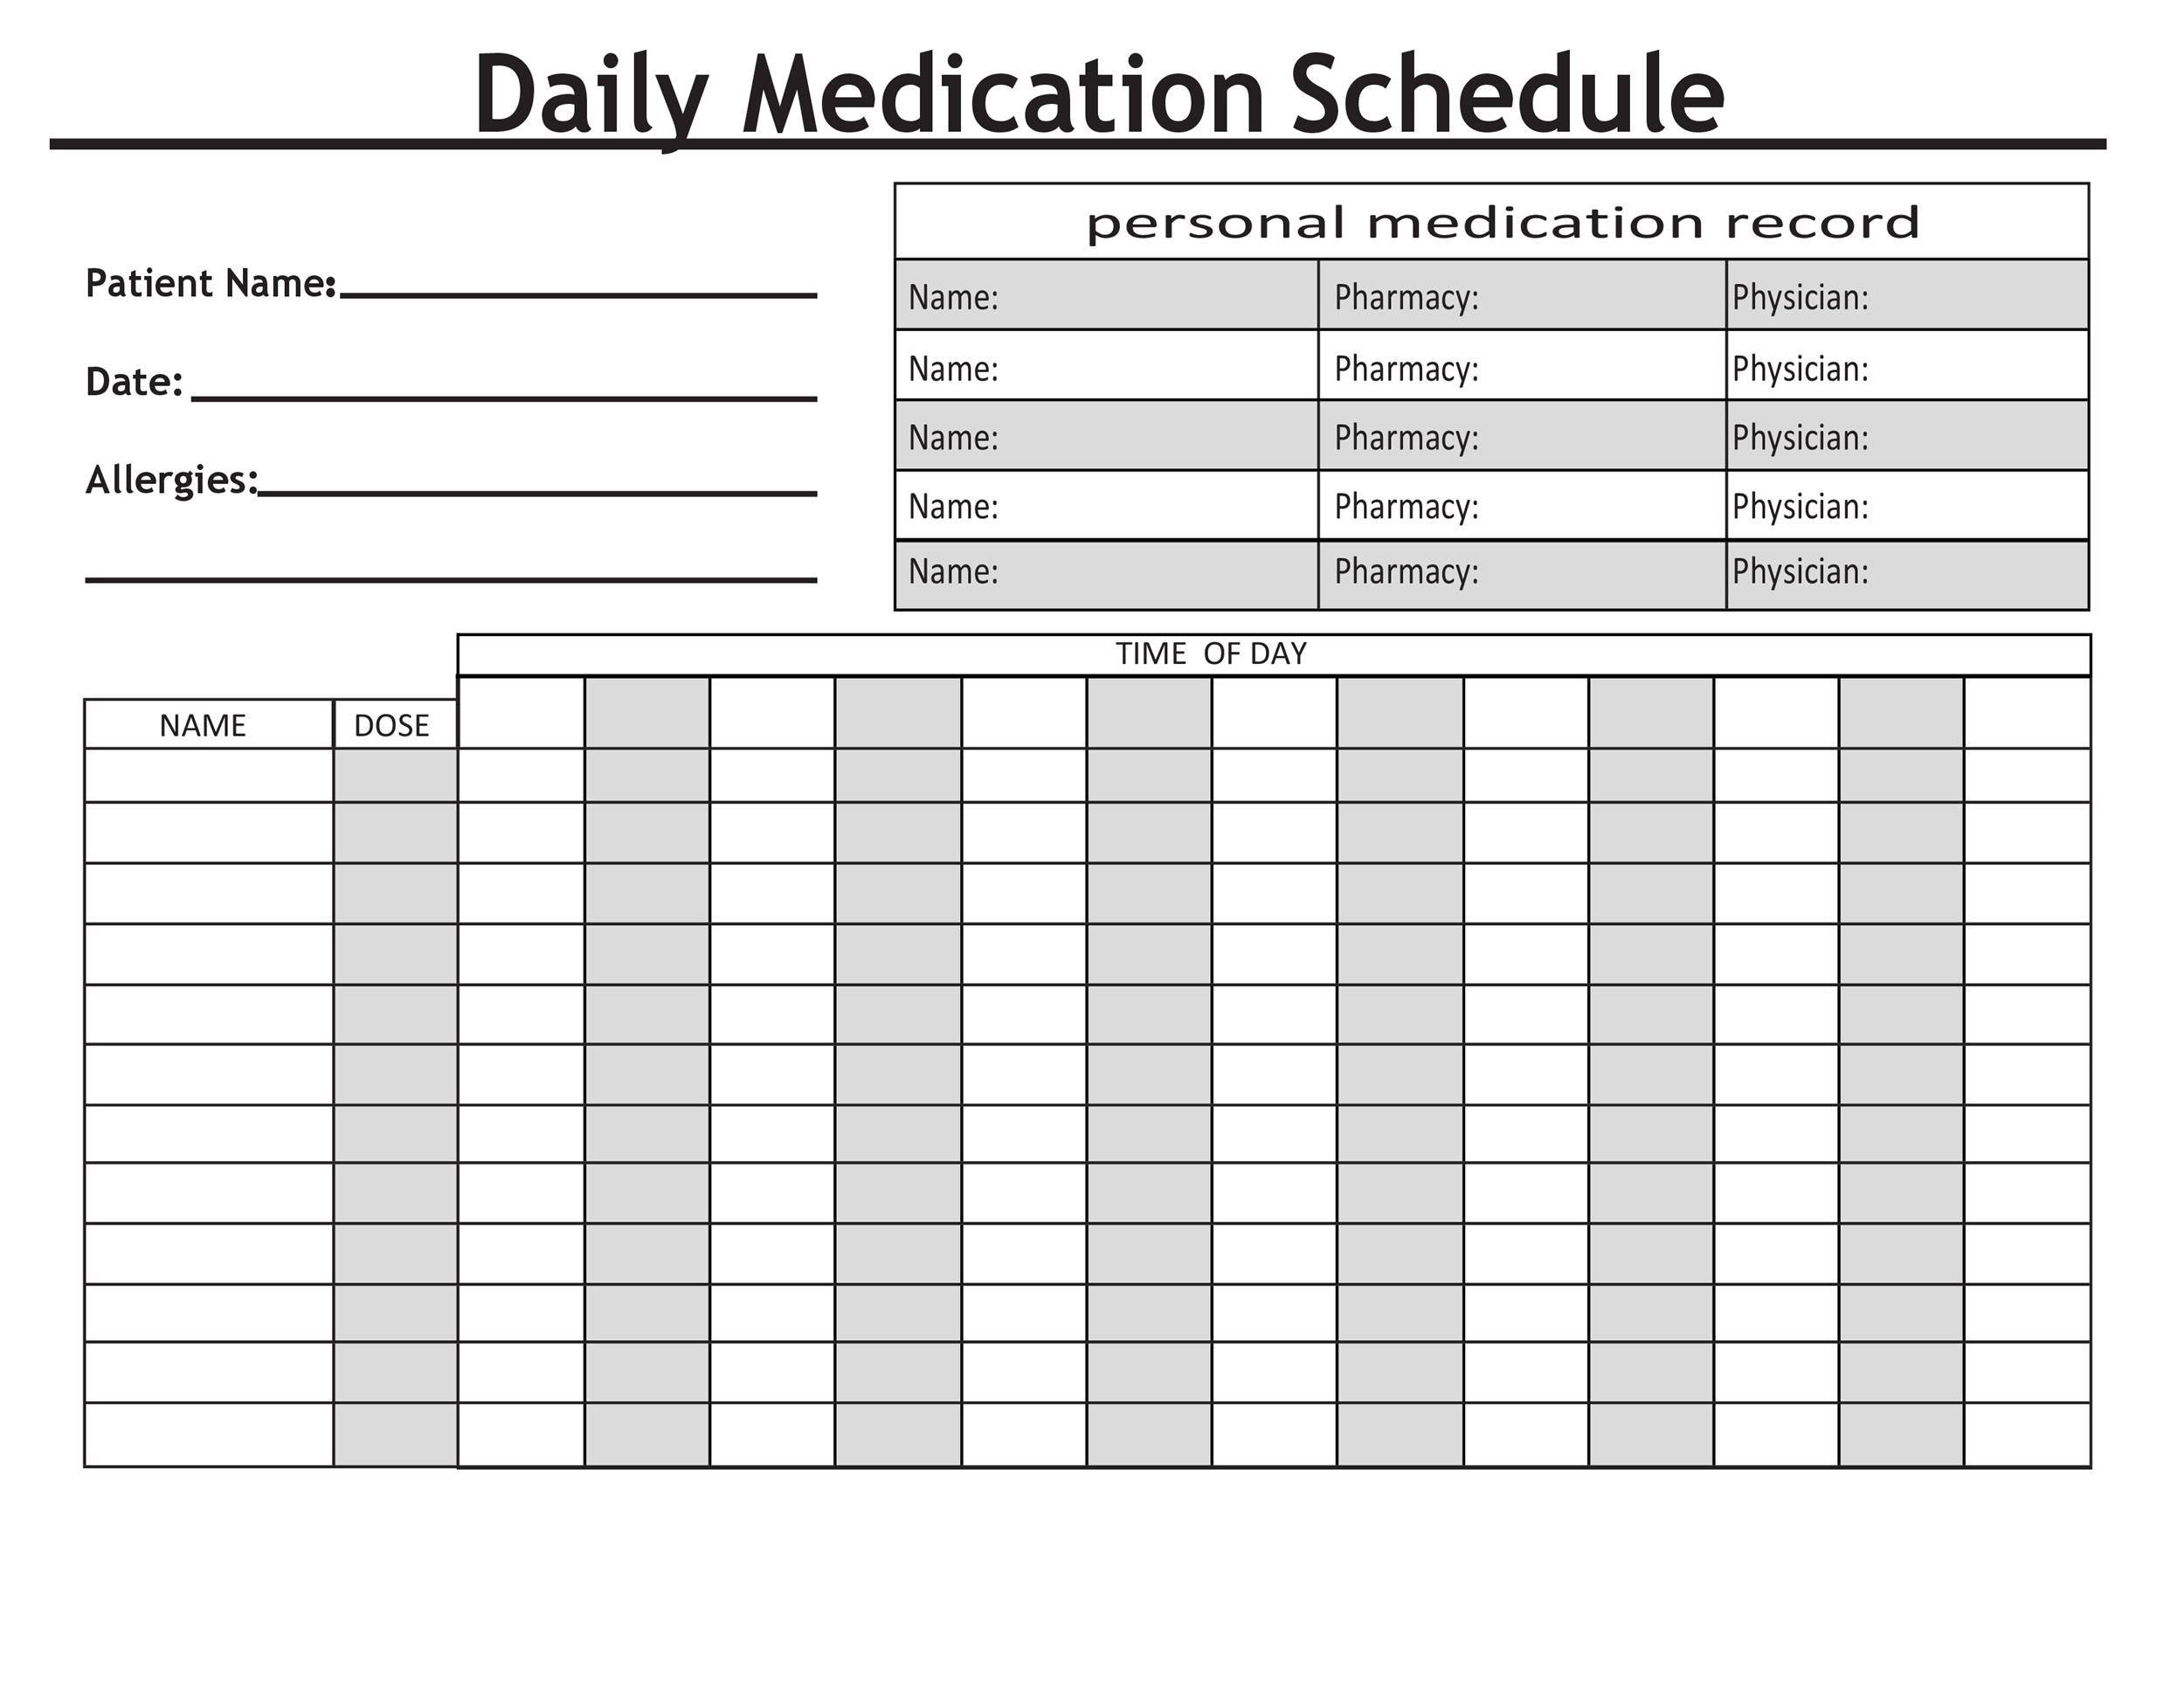 picture regarding Medical Charts Templates named 40 Fantastic Medicine Agenda Templates (+Drugs Calendars)